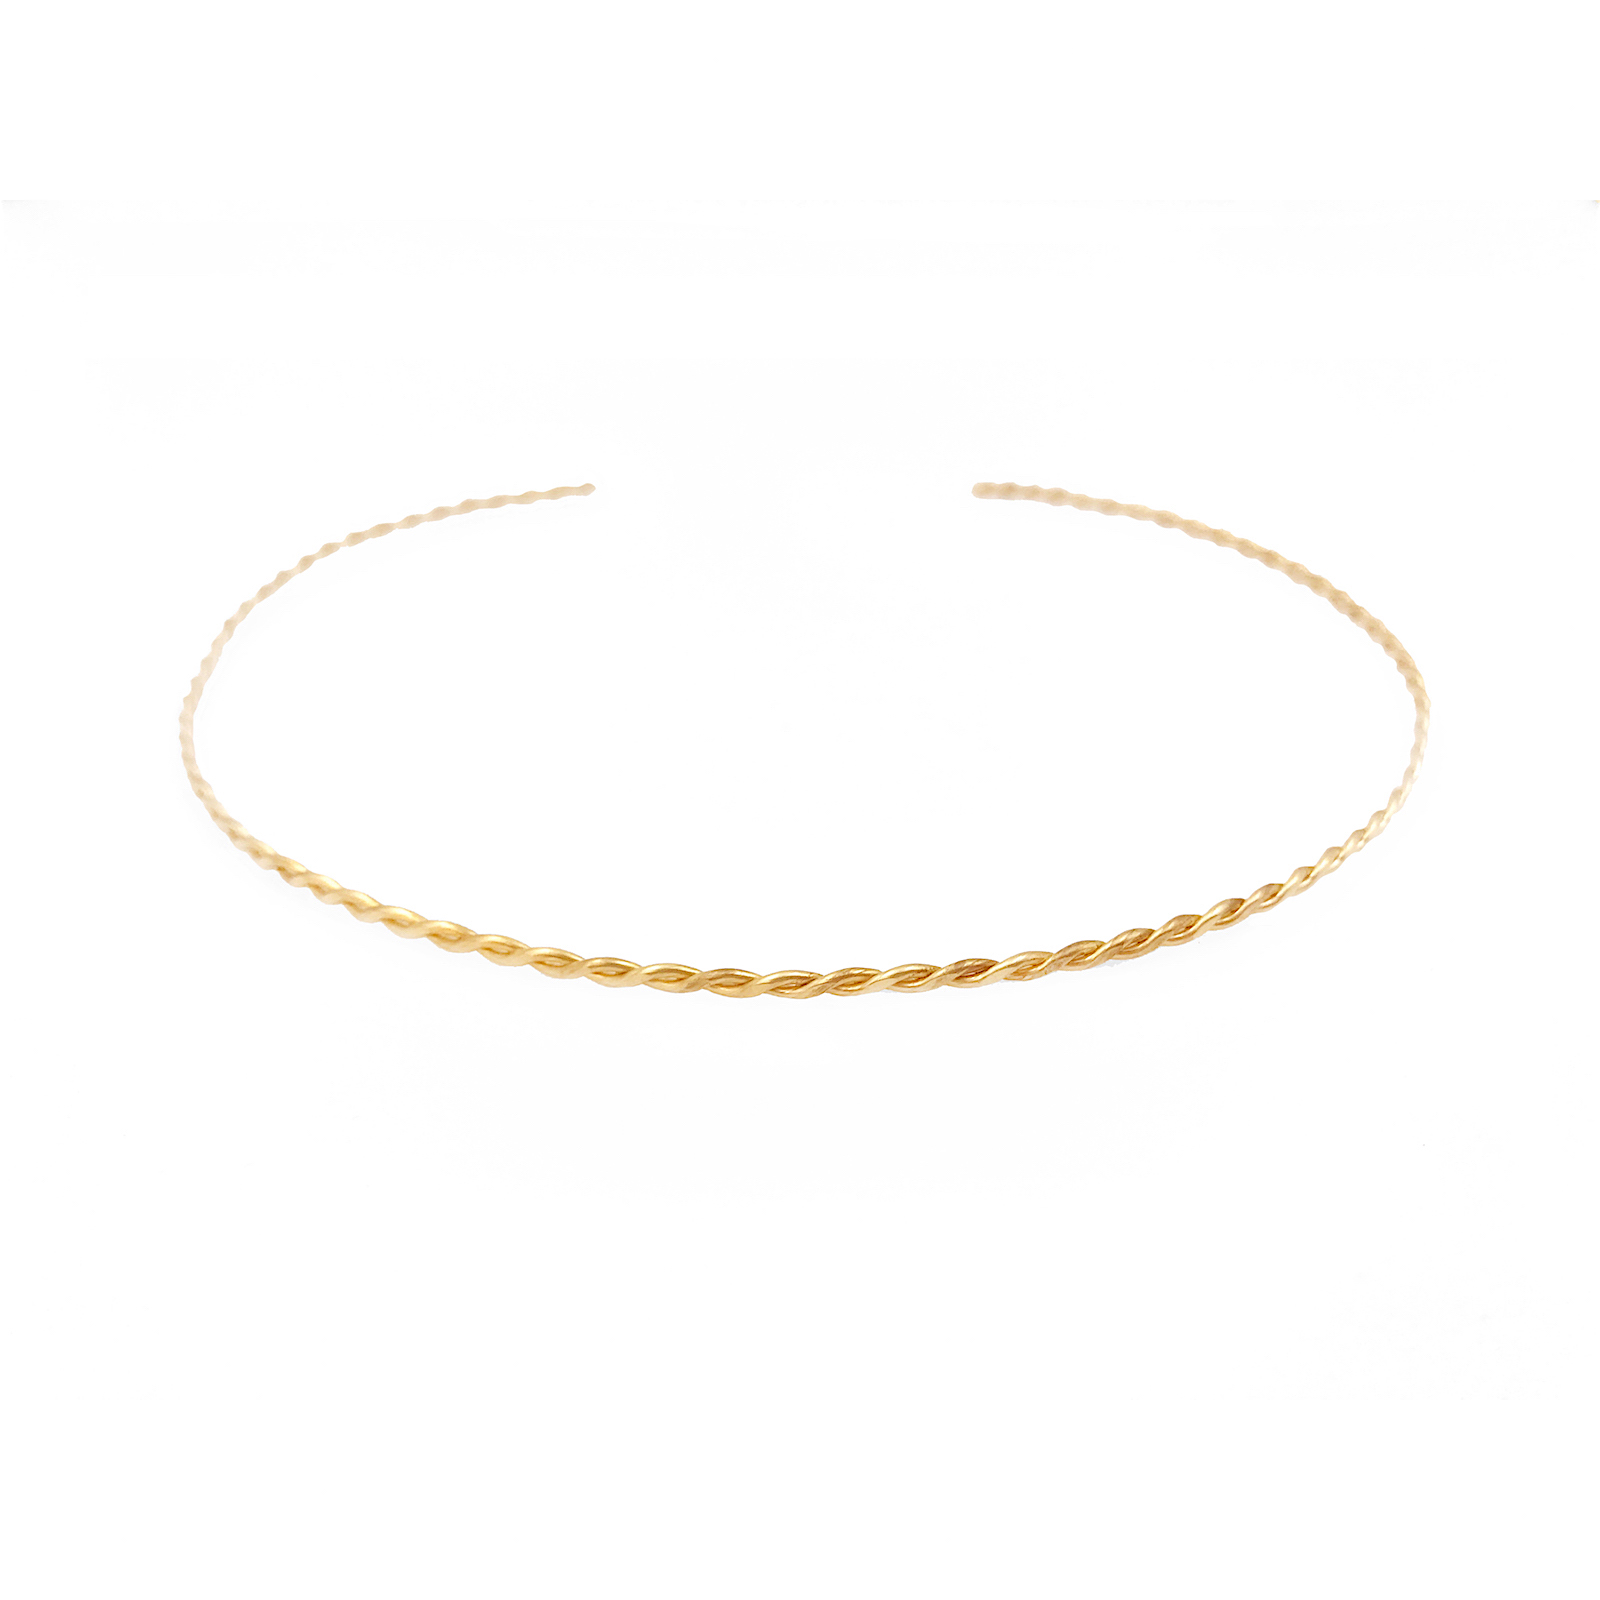 Hand twisted slim textured gold choker collar